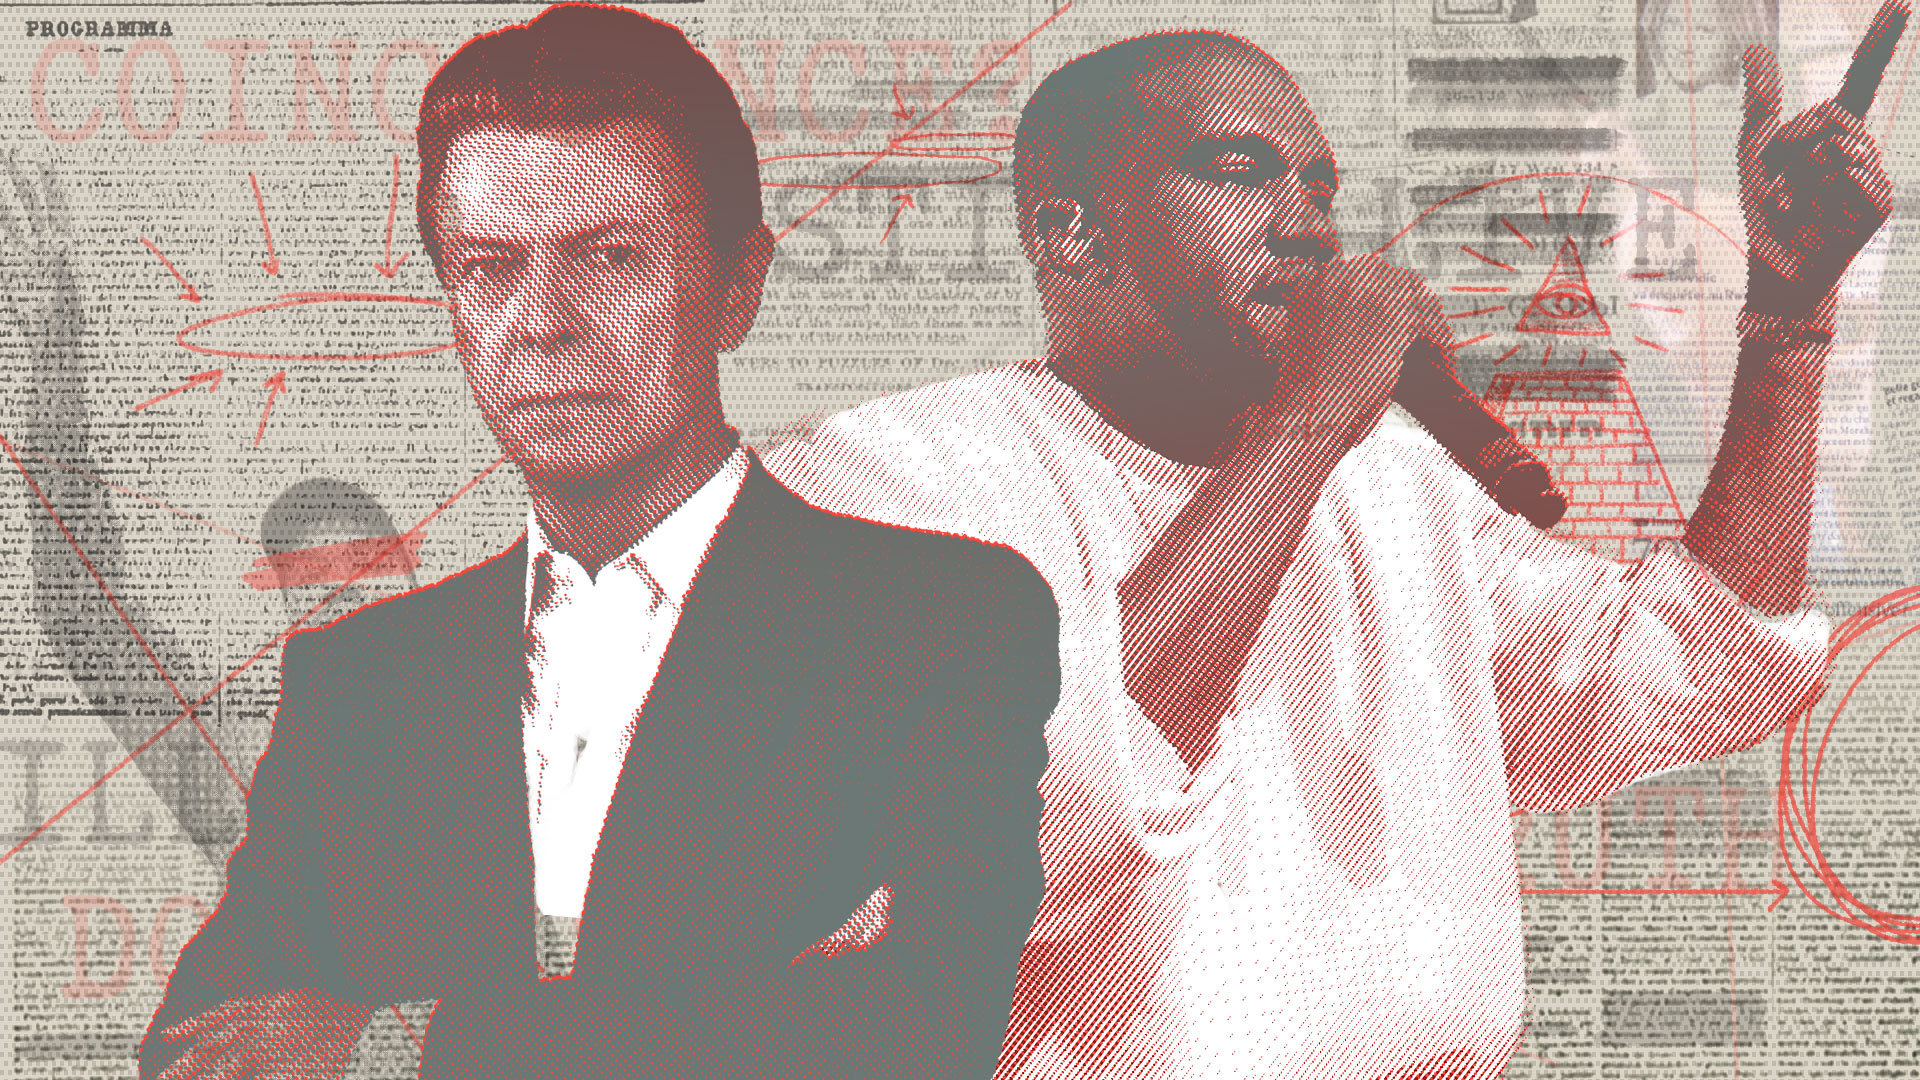 Kanye and Bowie: Music's Most WTF Conspiracy Theories